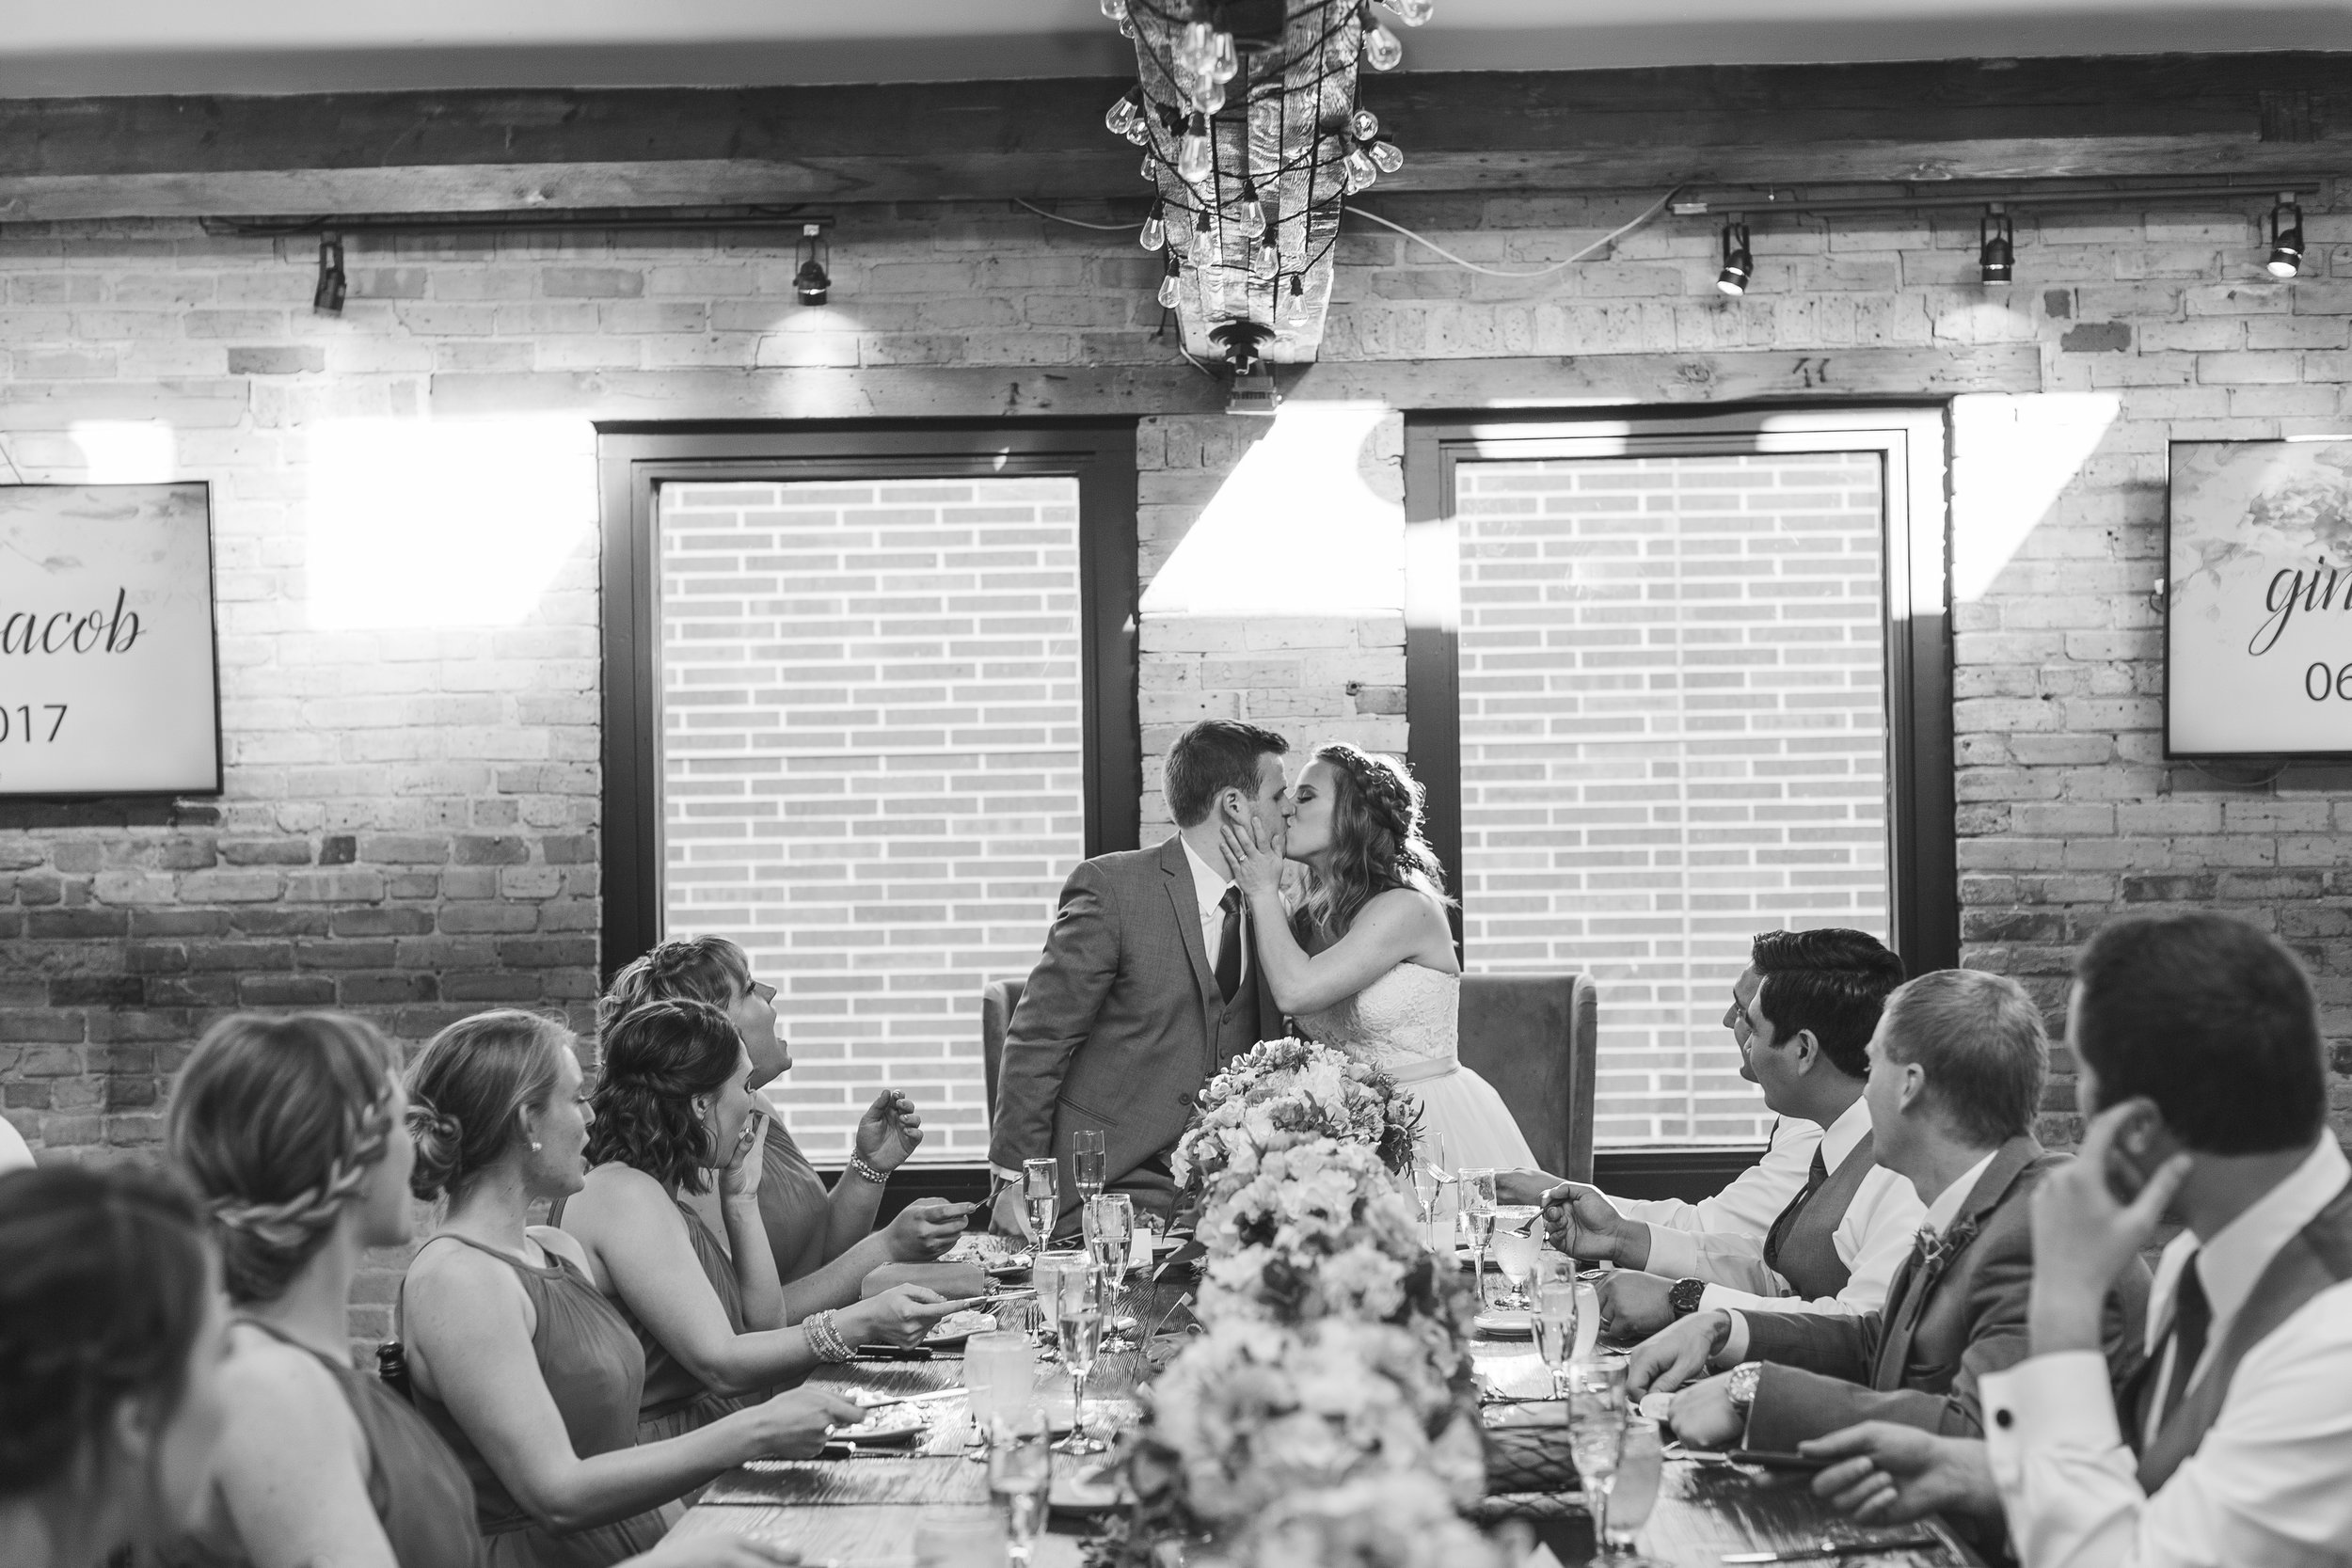 Bride and groom kissing at head table during reception in black and white at Minneapolis Event Centers wedding Minnesota wedding photography Mallory Kiesow Photography